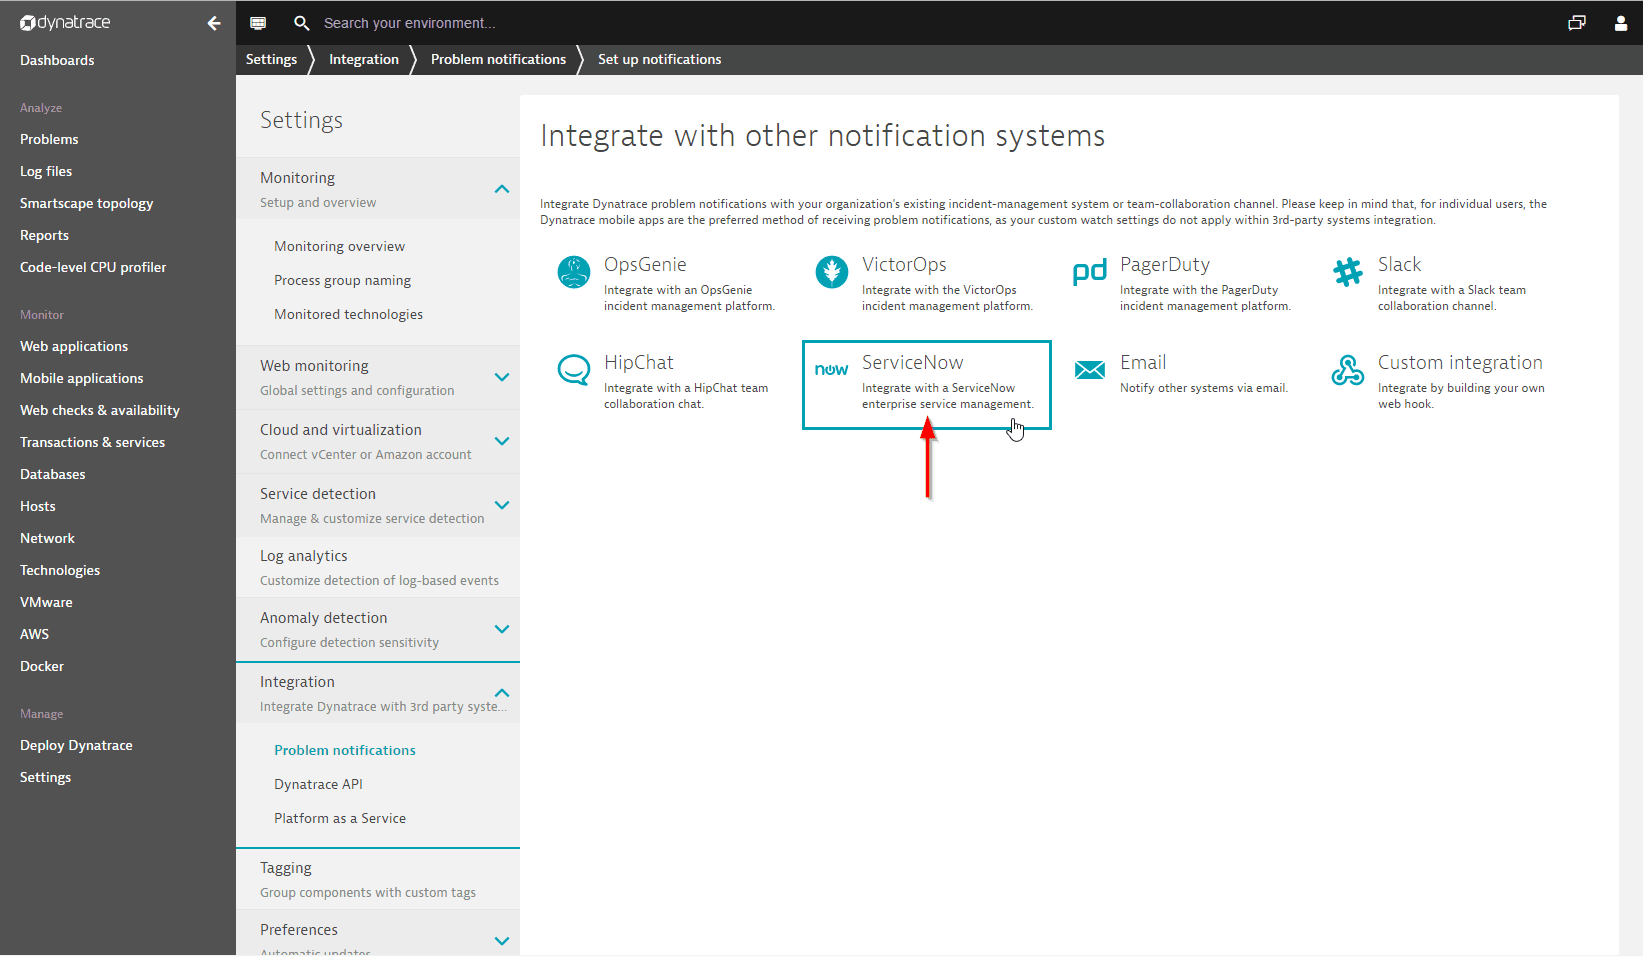 ServiceNow integration | Dynatrace Help